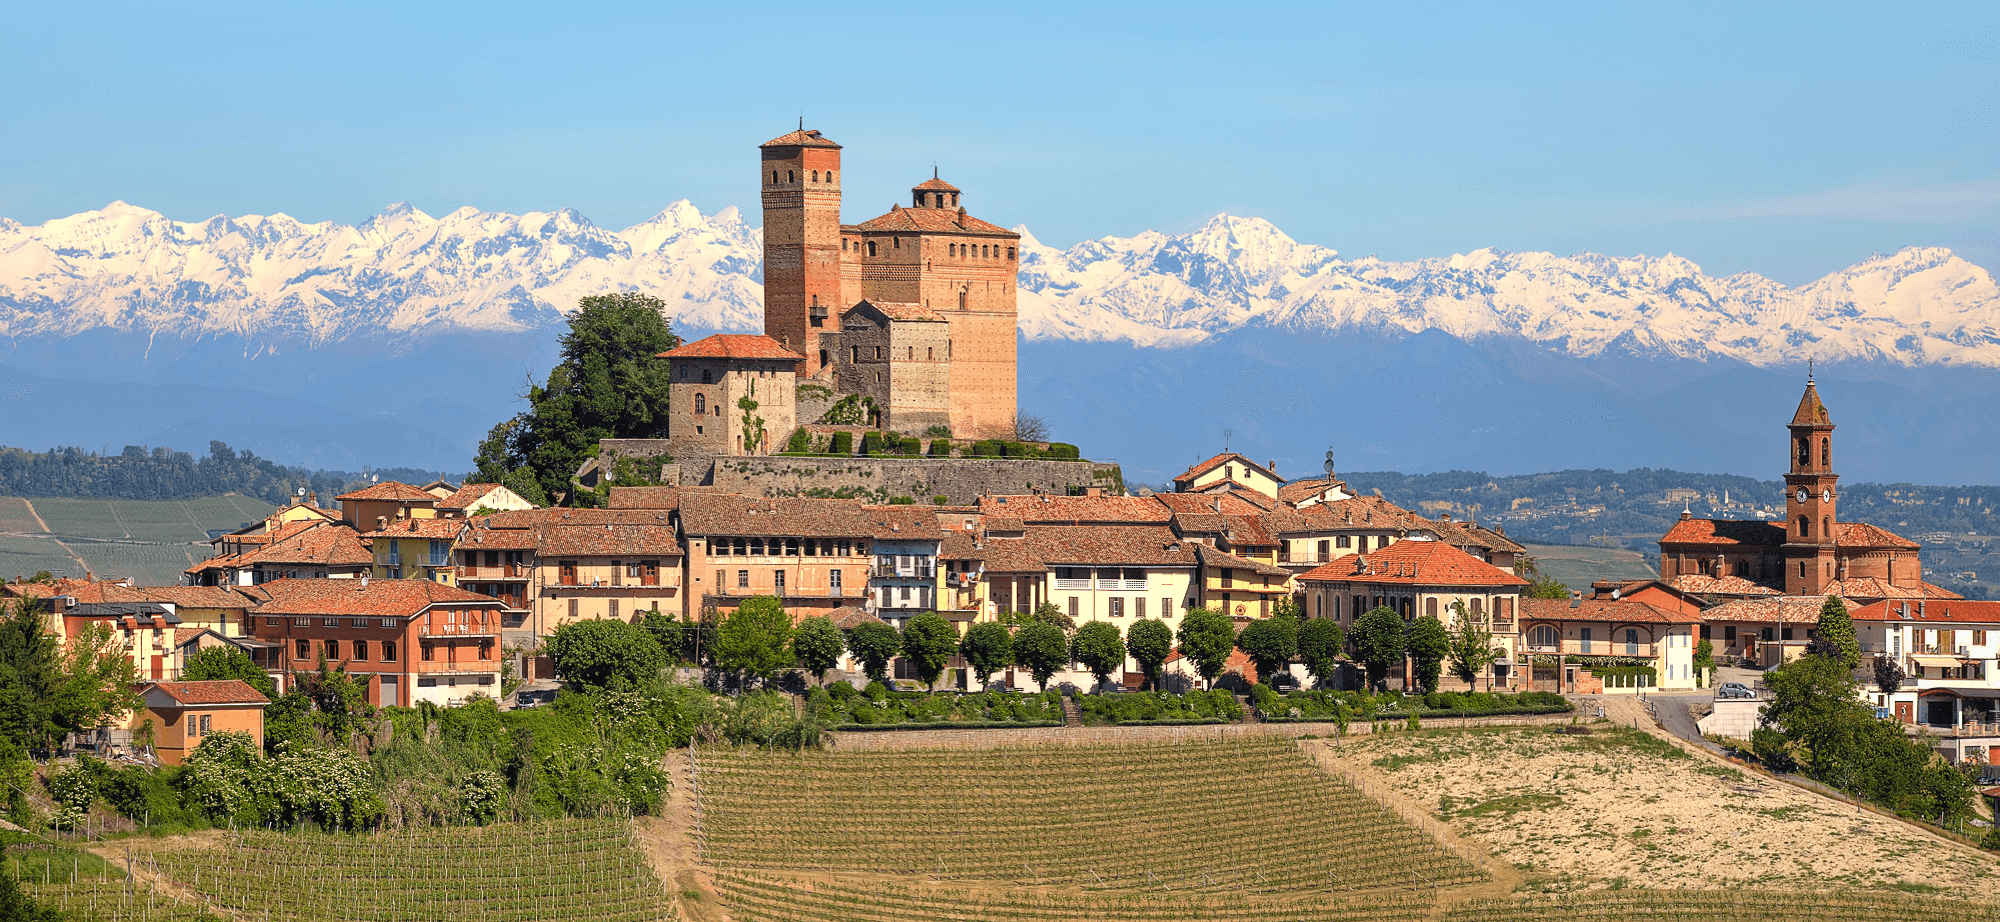 Barolo Piemonte with Alps in Background